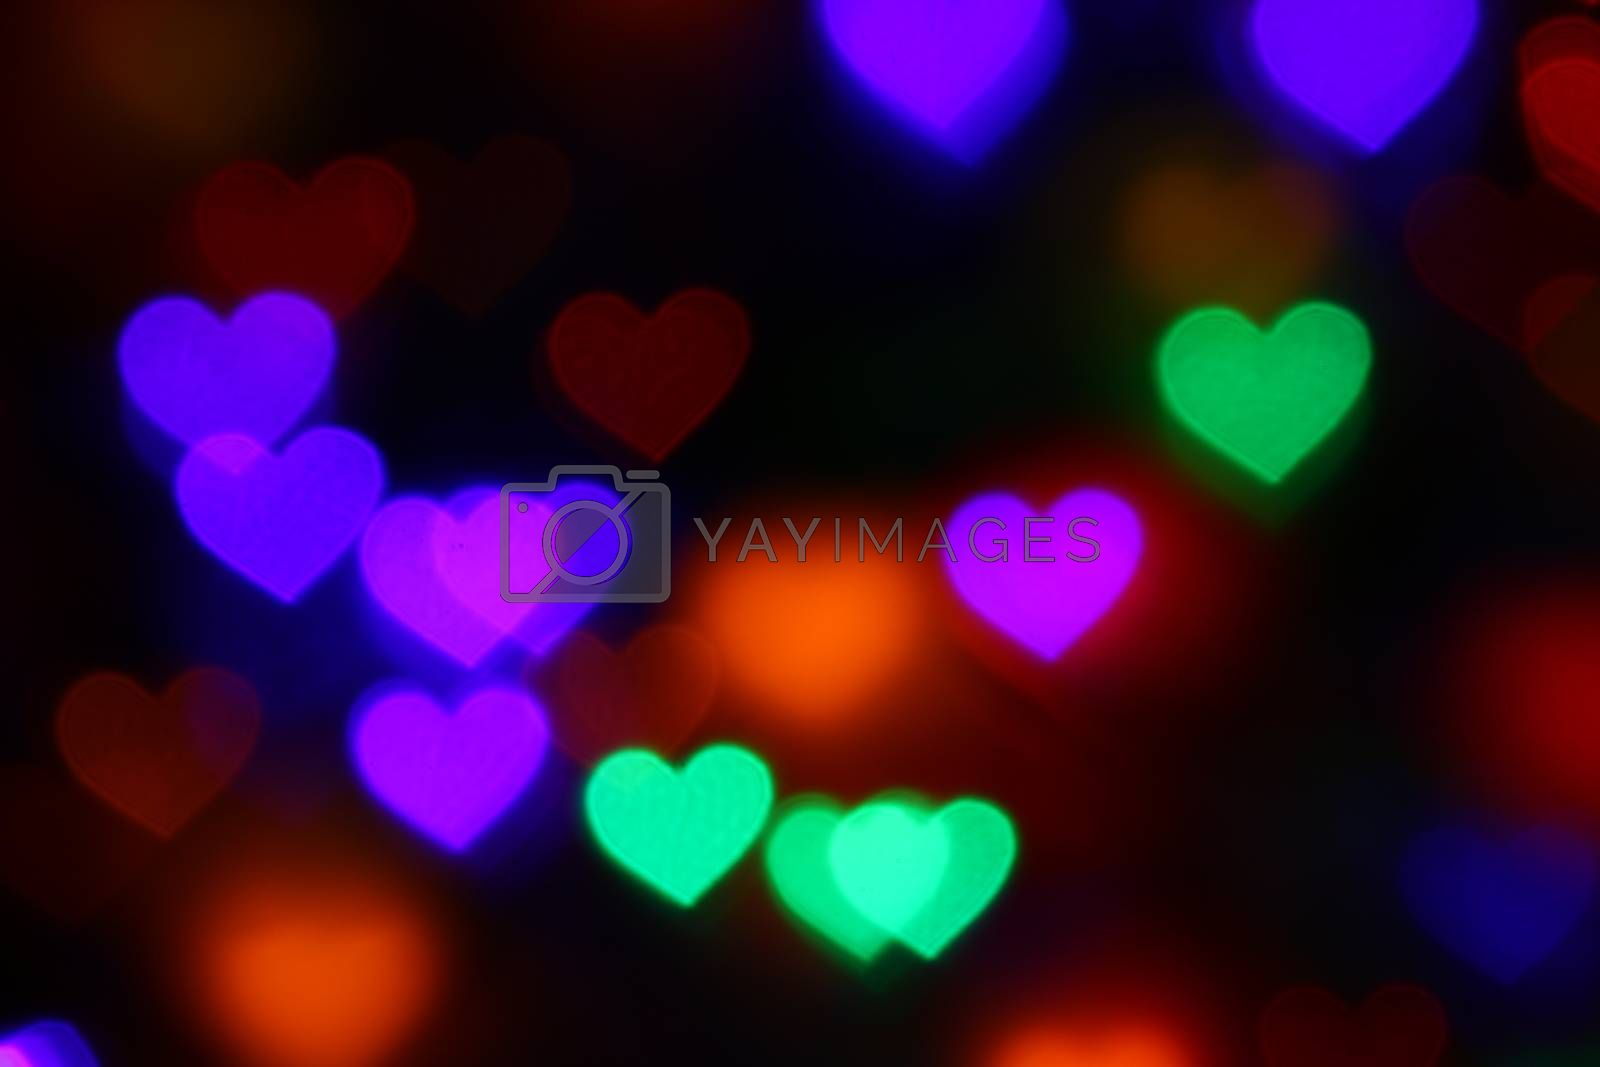 Valentines Colorful heart-shaped bokeh on black background lighting bokeh for decoration at night backdrop wallpaper blur valentine, Love Pictures background, Lighting heart shaped soft night abstract